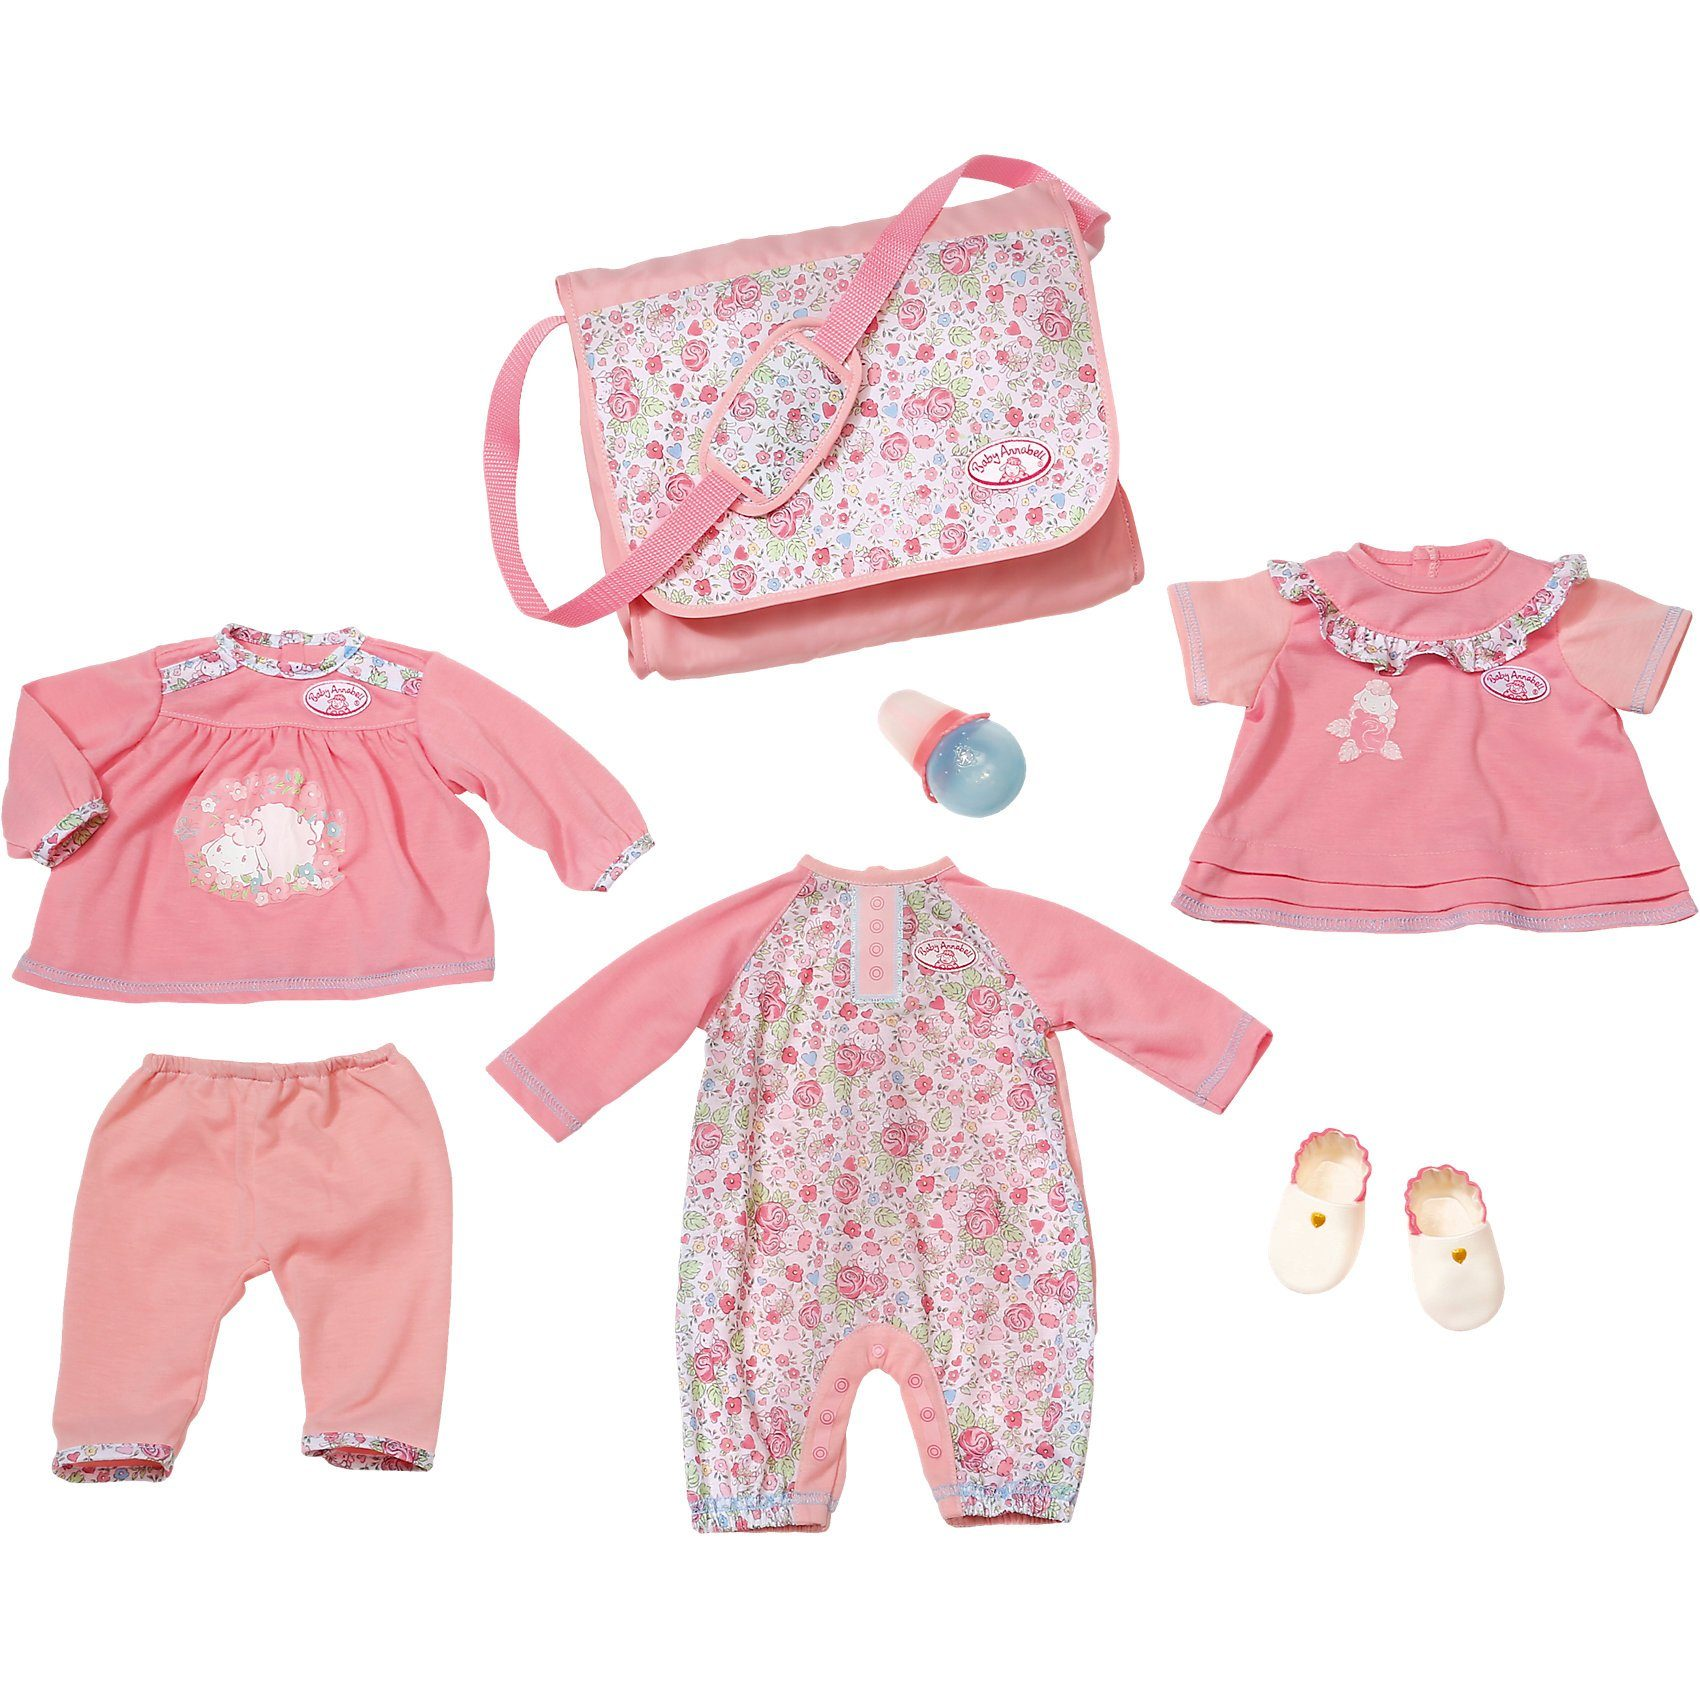 Zapf Creation Baby Annabell® Puppenkleidung Great Value Pack